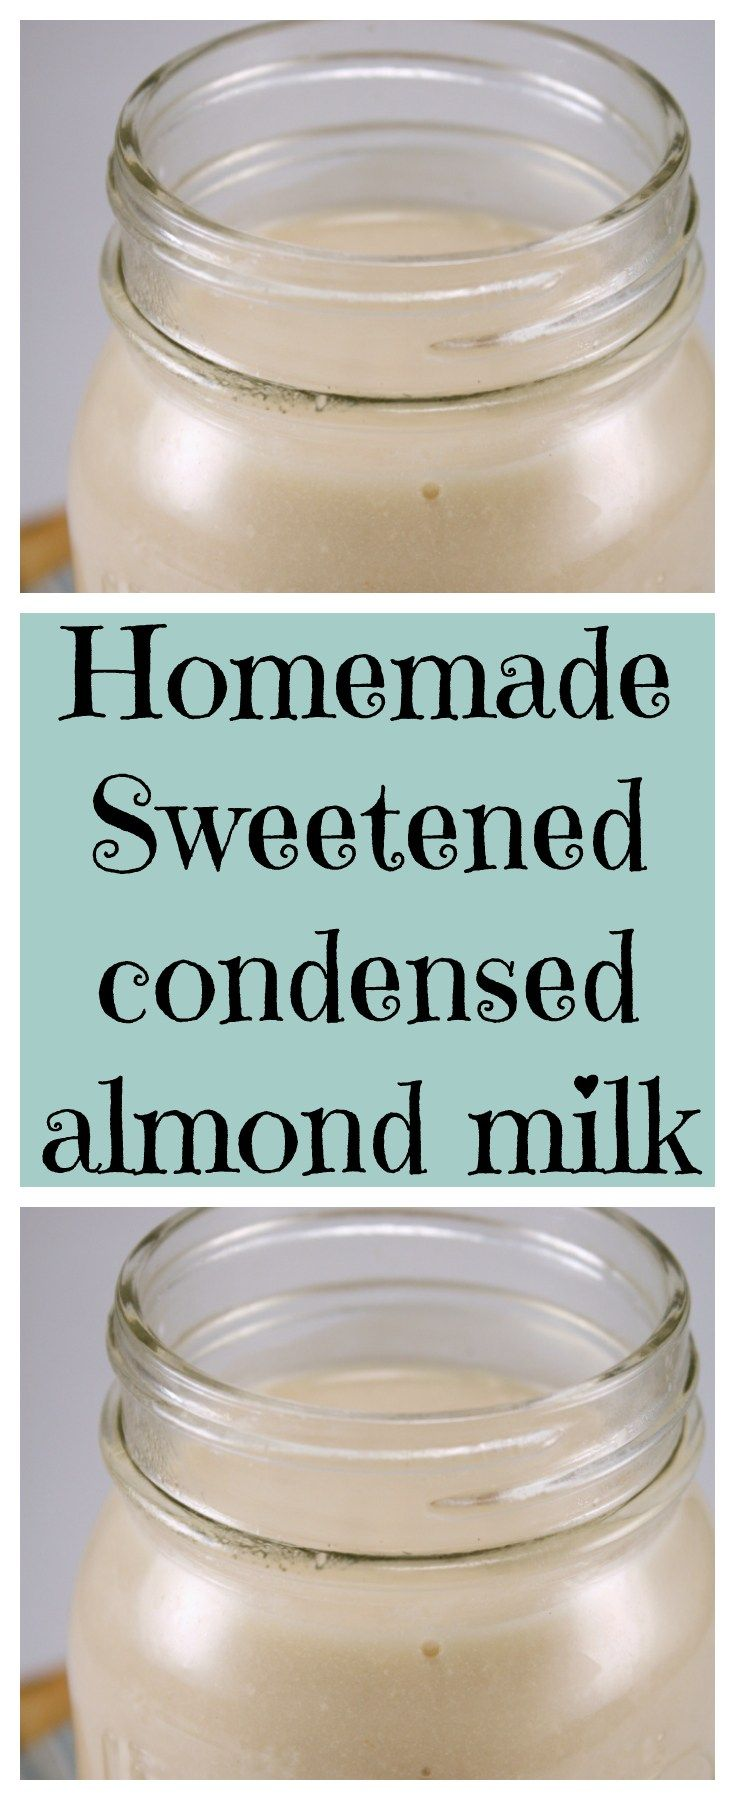 Homemade Sweetened Condensed Almond Milk 5 Calories Per Tablespoon With Images Almond Milk Desserts Homemade Sweetened Condensed Milk Almond Milk Recipes